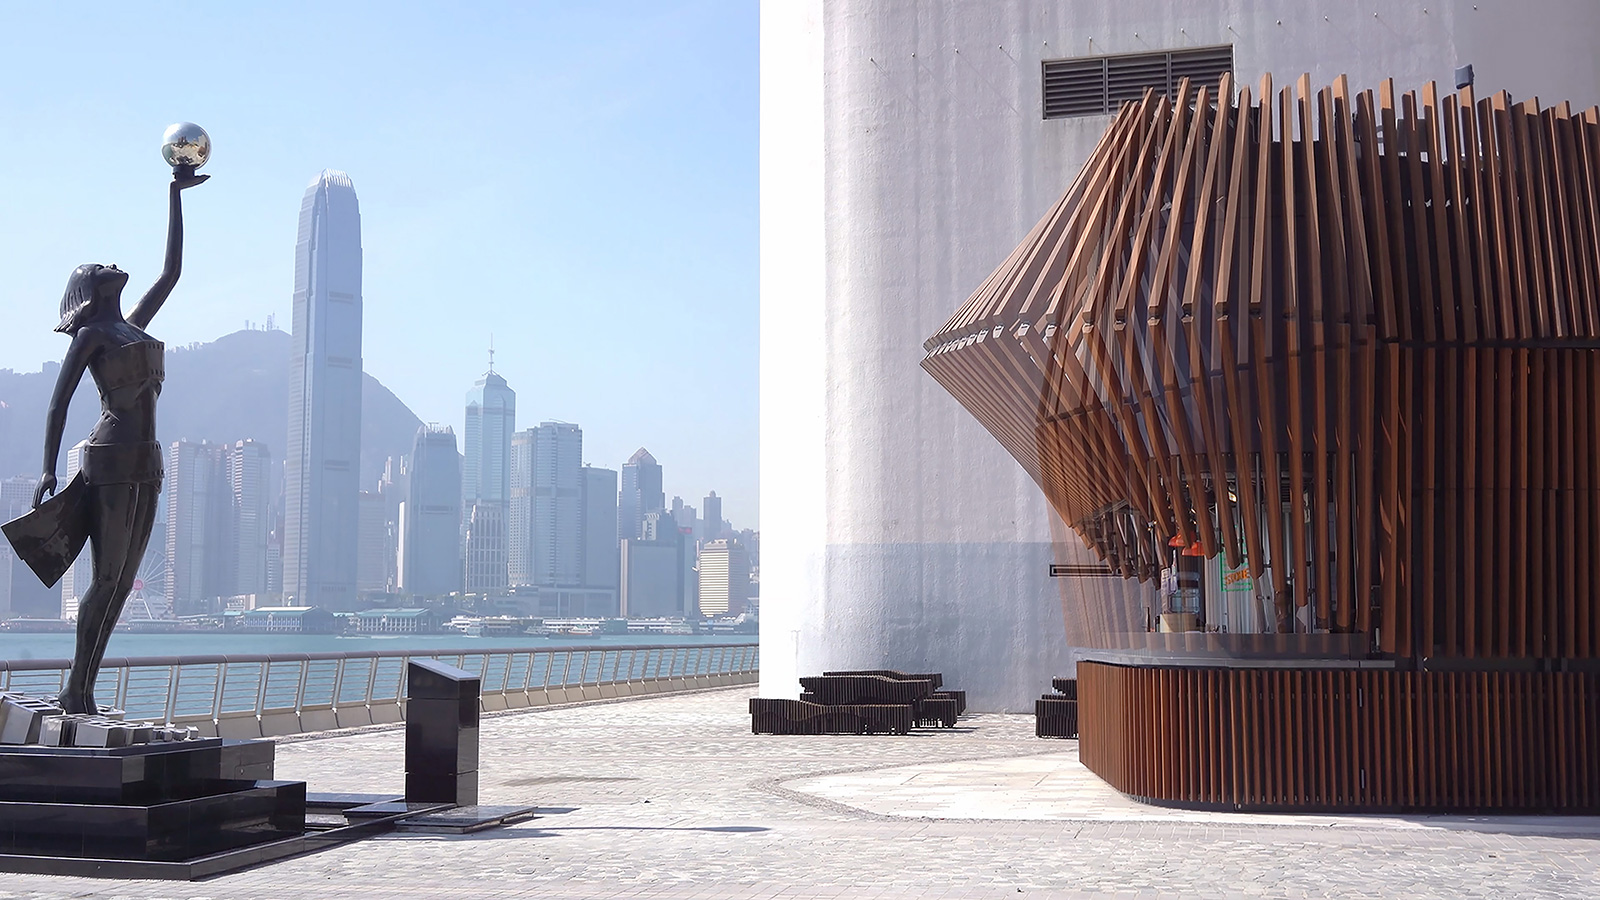 Kinetic architecture arrives in Hong Kong with the Harbour Kiosk. It's operated by 49 robotic arms